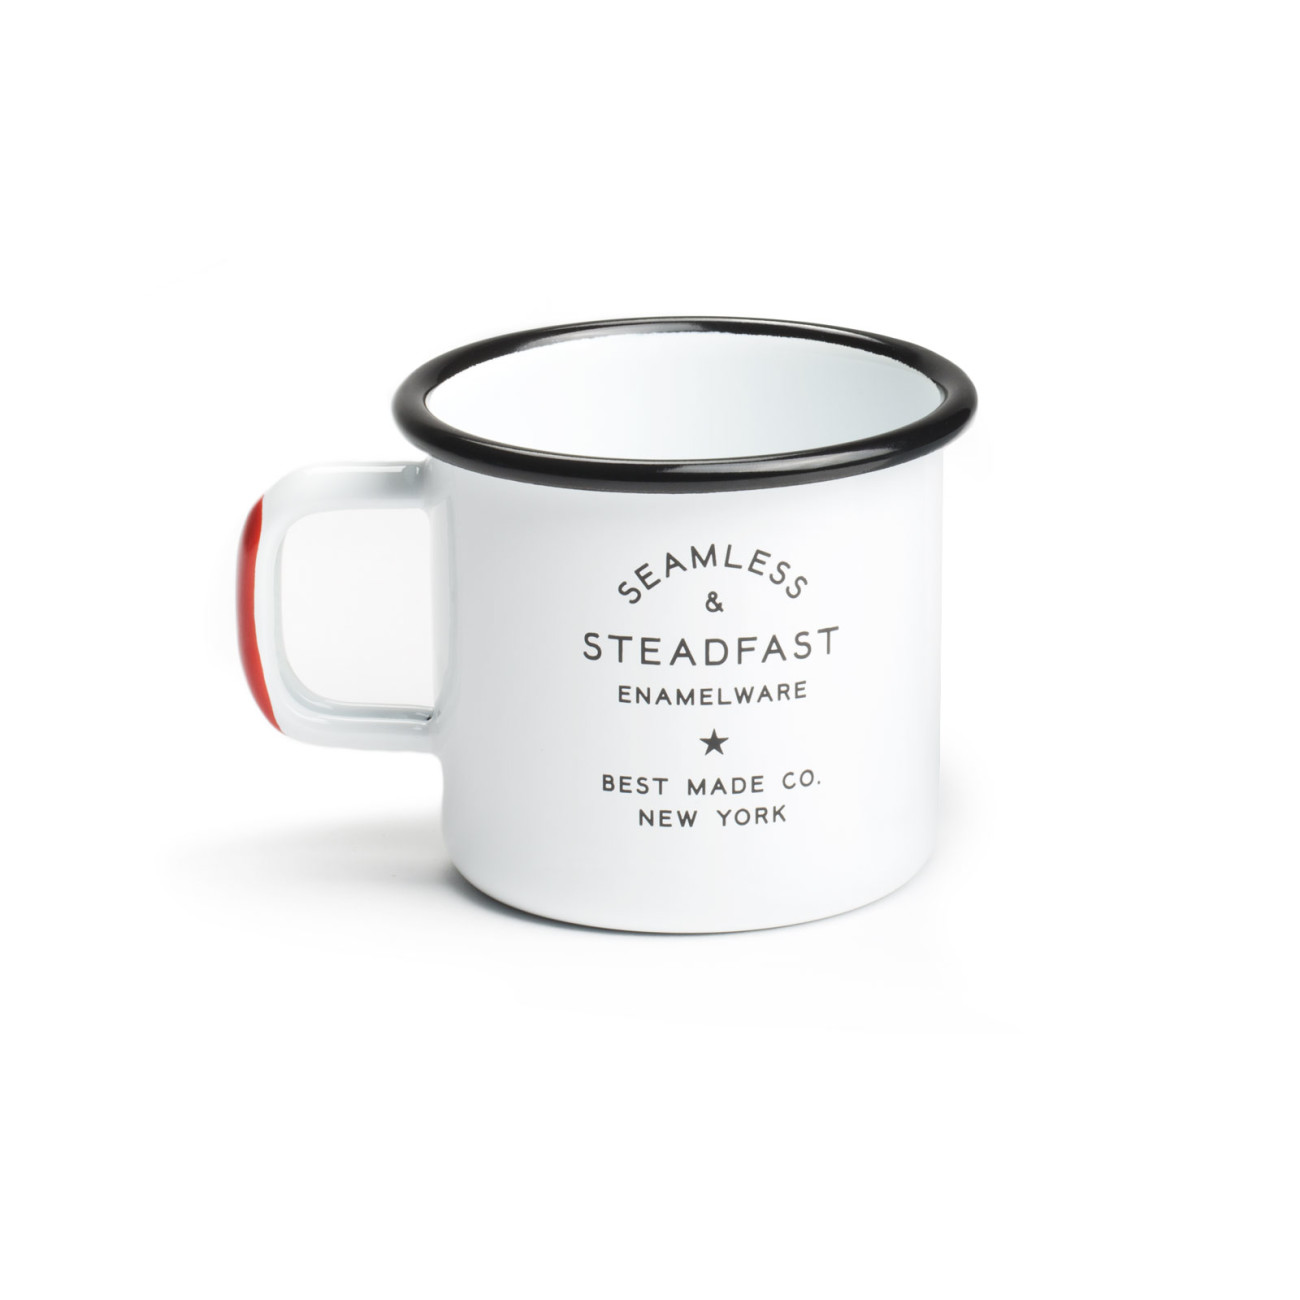 ENAMELWARE CUP  : $32 (set of 2)   PERFECT FOR : Your friend that loves camping and also everyone else. Enamelware steel, also comes in Teal.   Best Made Co.